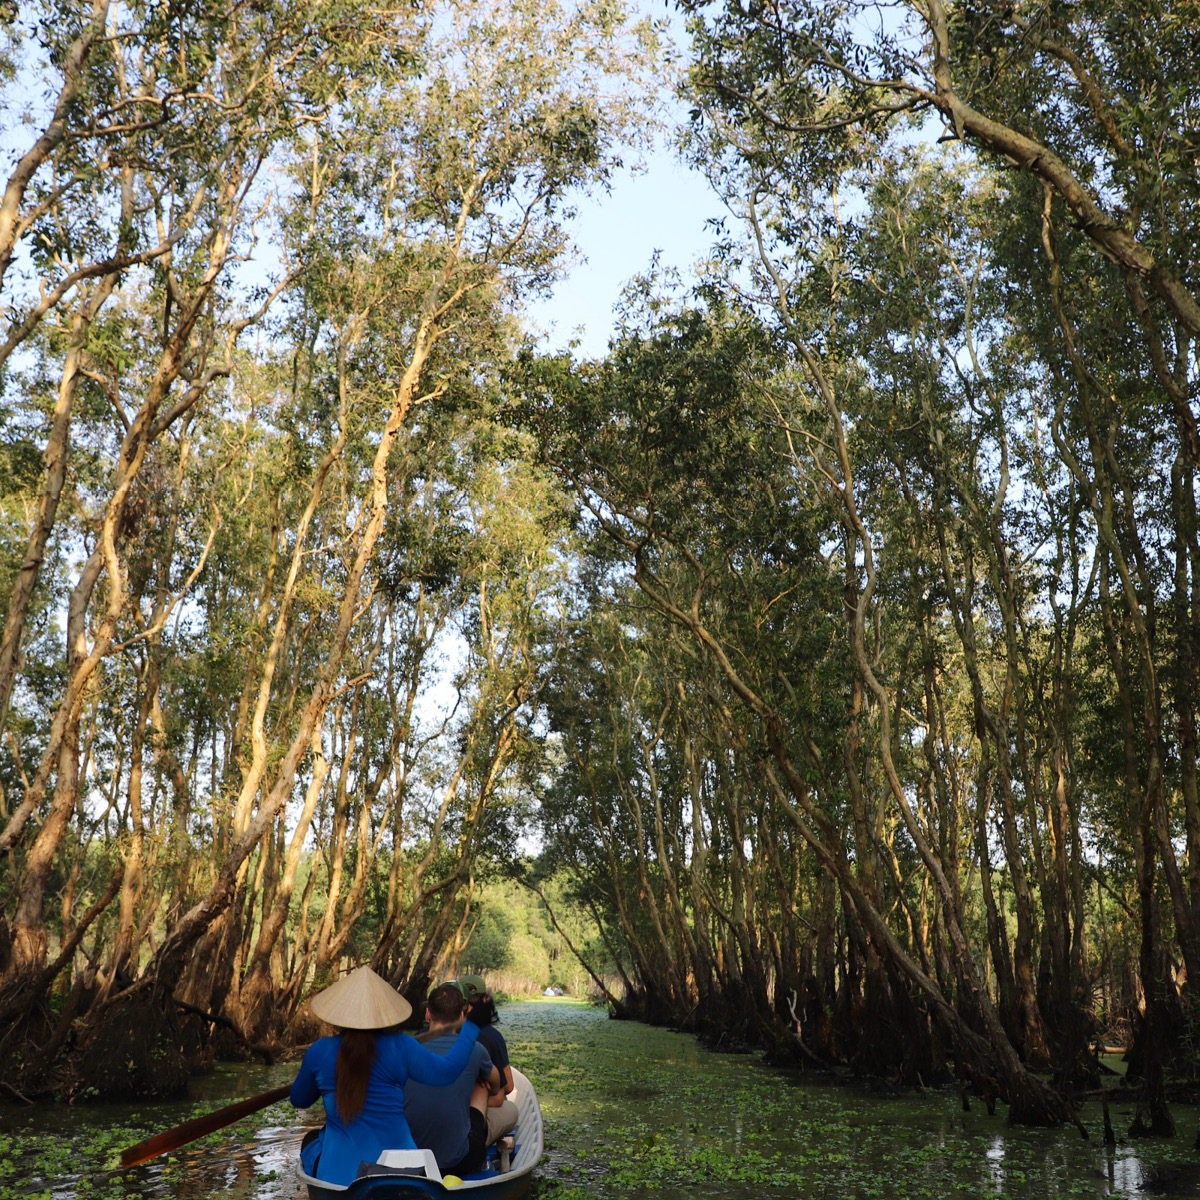 On a small paddle boat outside of Cán Thó, Vietnam, a woman maneuvers the still, winding waters in the shade of the century old trees.